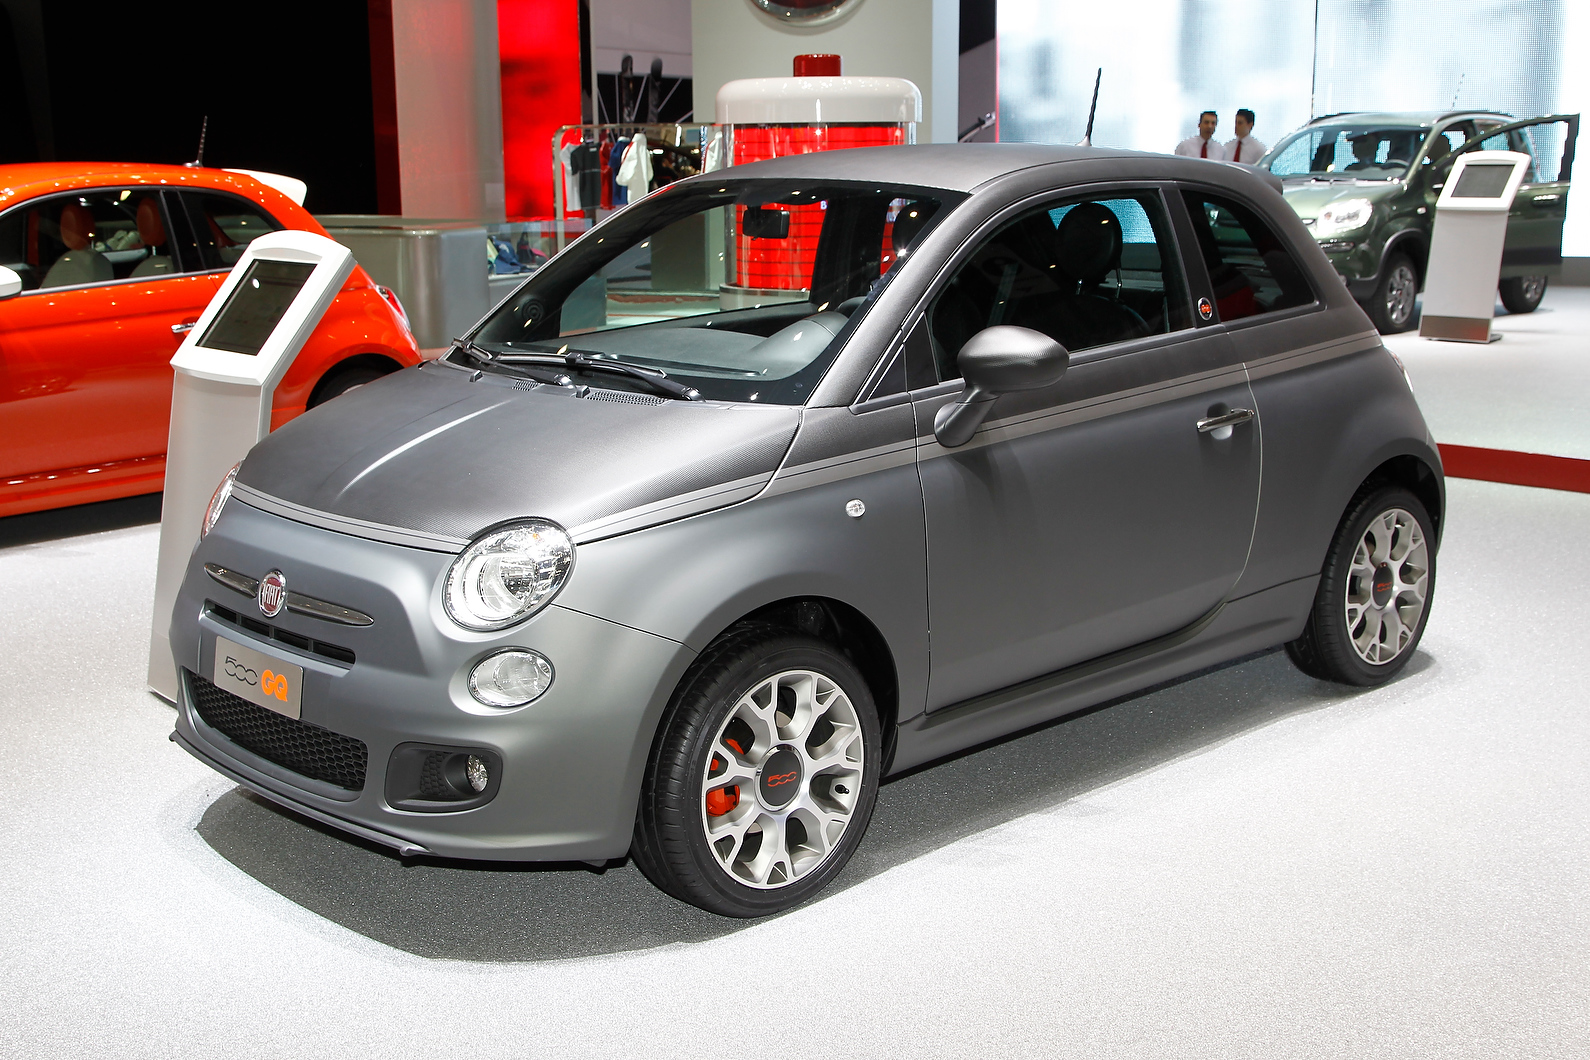 The Fiat 500 GQ is one of a number of special editions of the city car